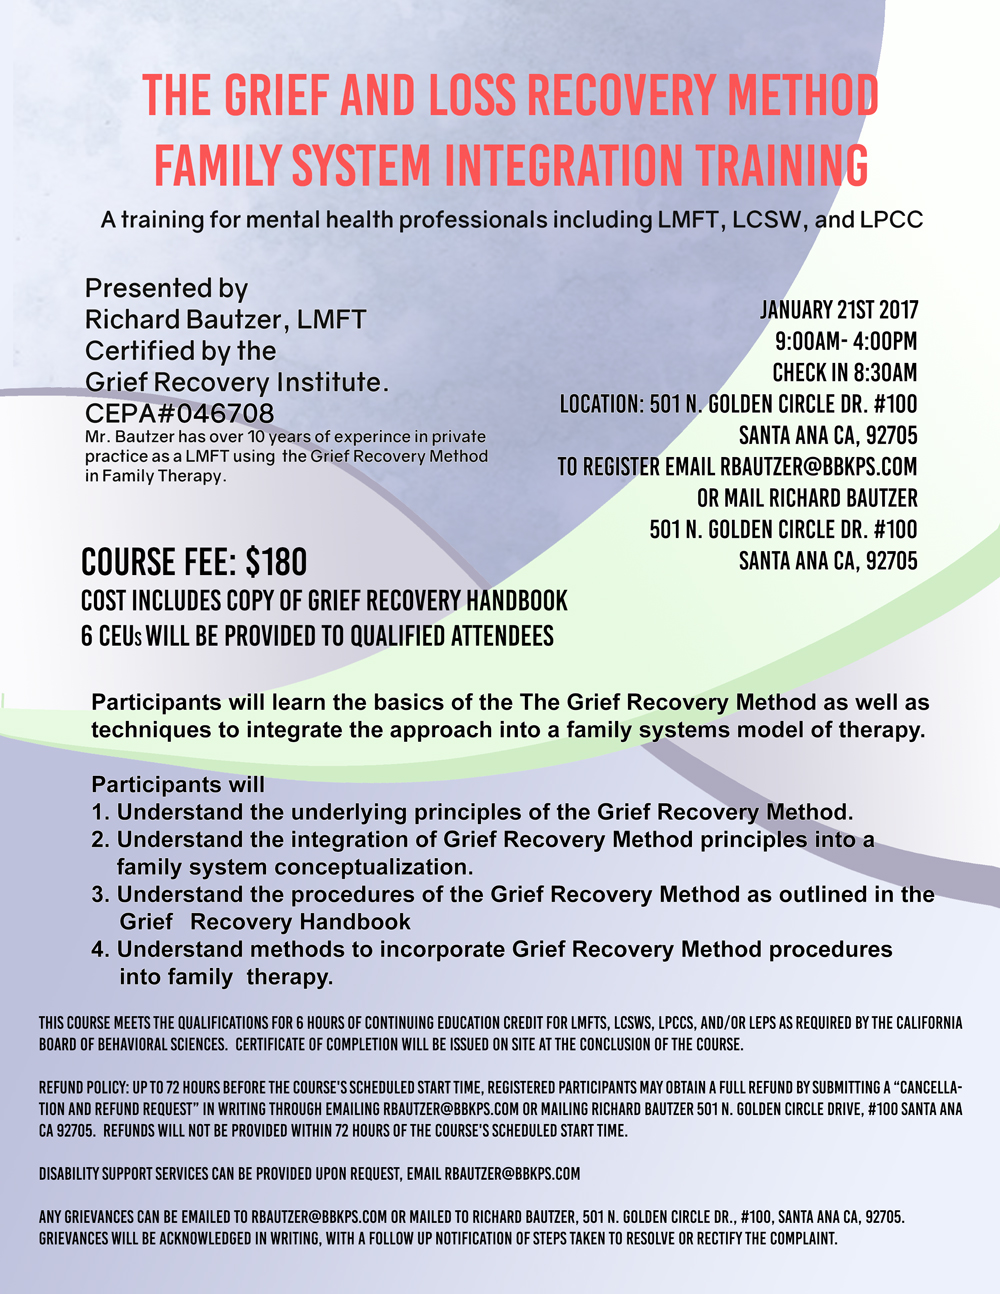 greif_recovery_trainig_jan21_flyer